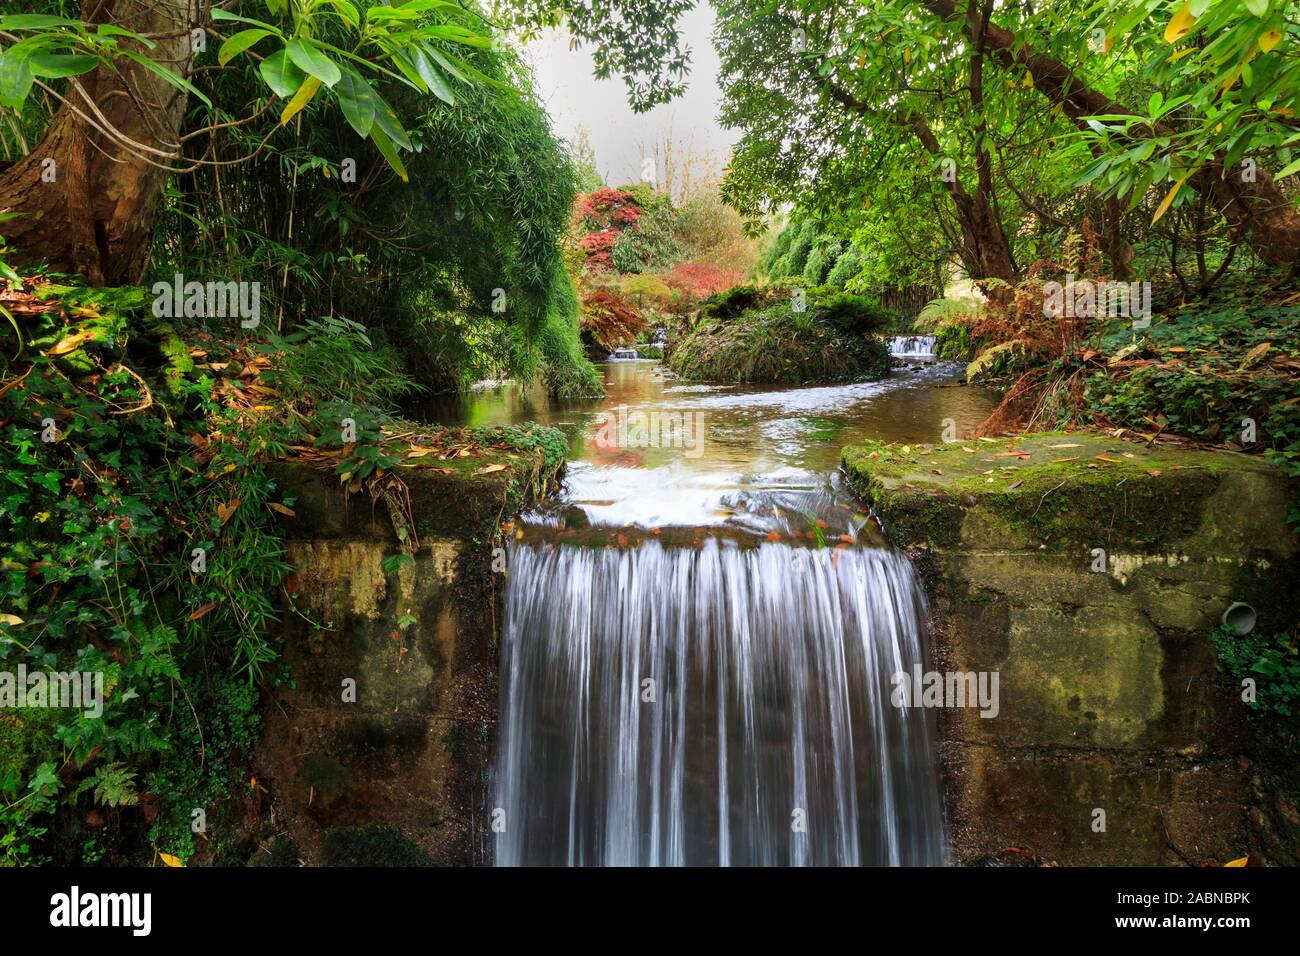 autumn-colour-and-cascades-on-the-addenbrook-at-lukesland-gardens-2ABNBPK.jpg